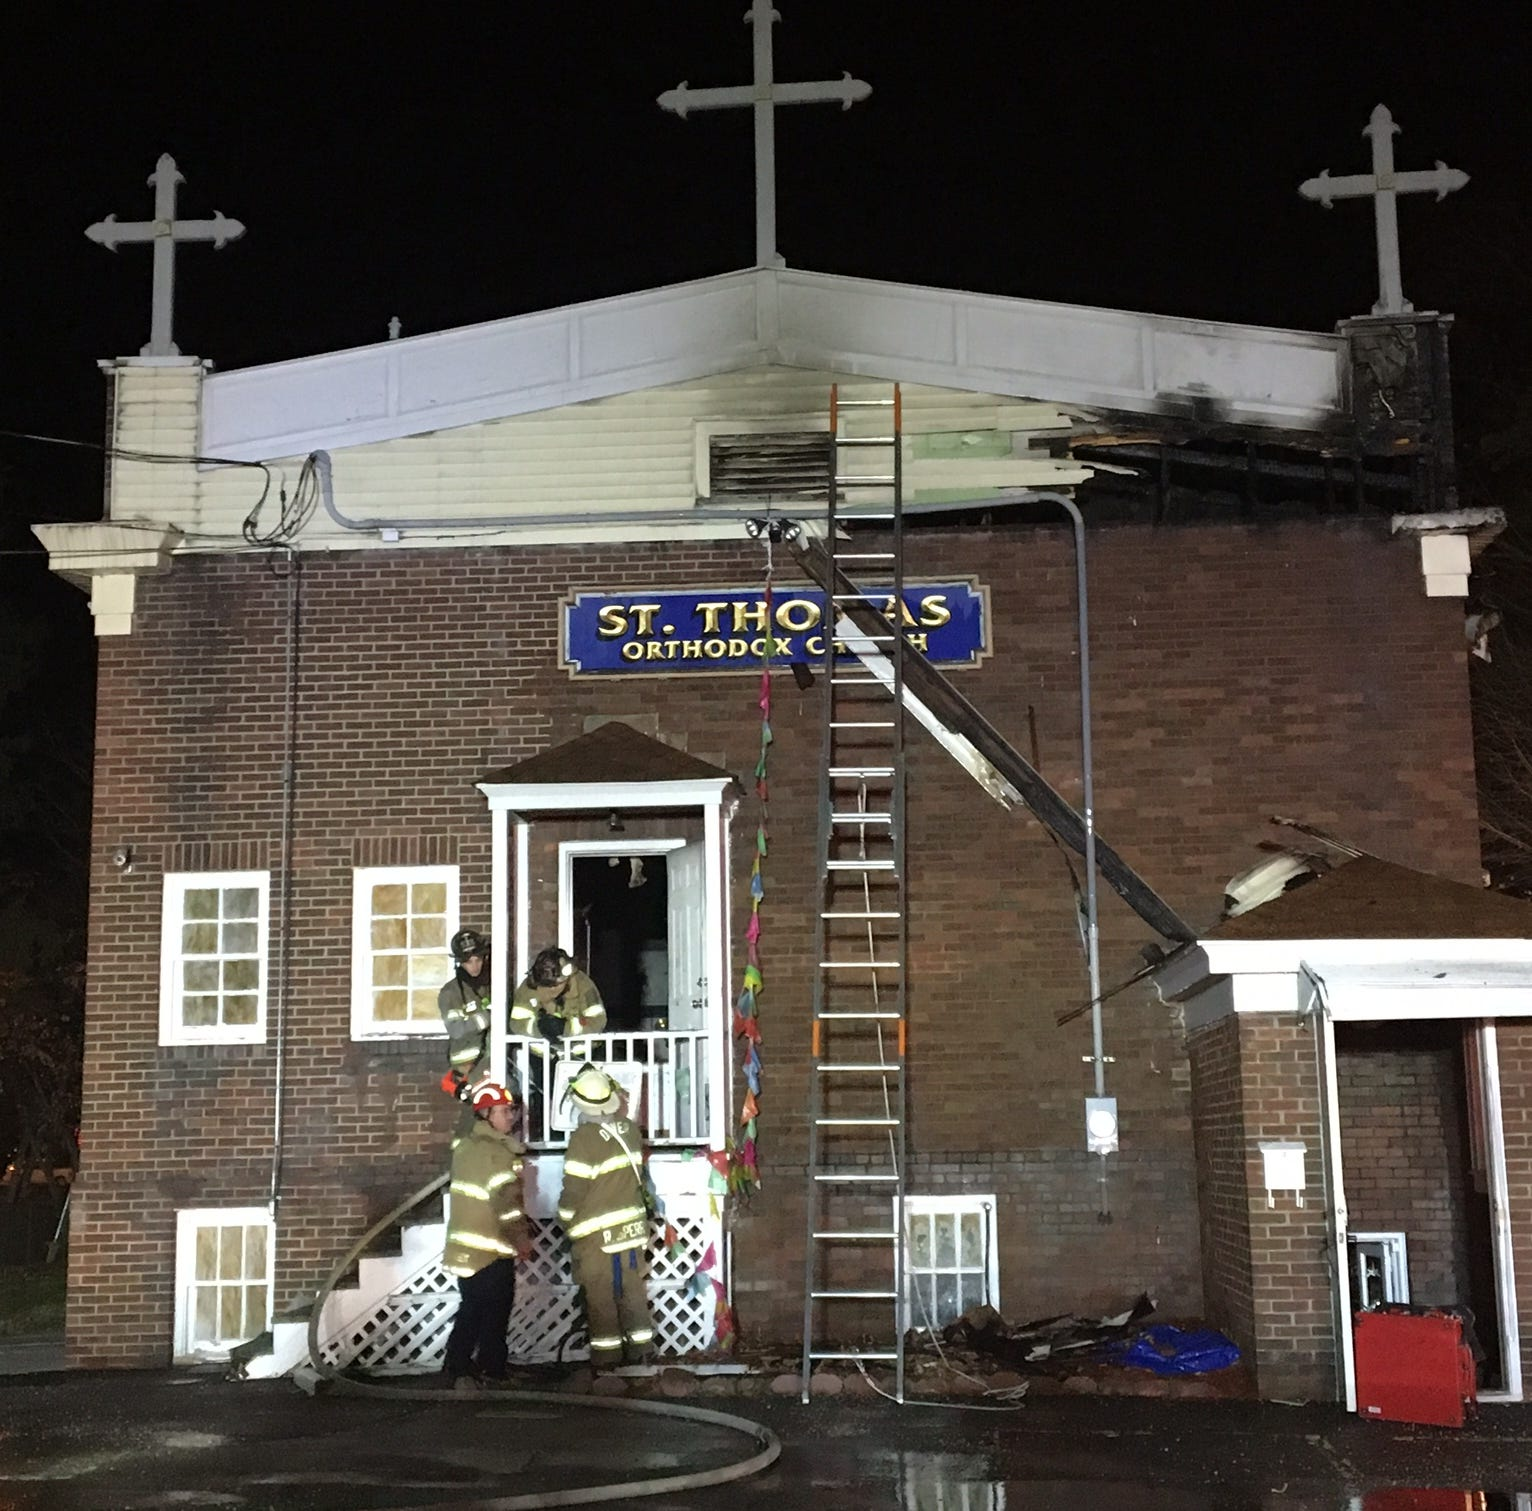 Fire damages St. Thomas Orthodox Church in Dover